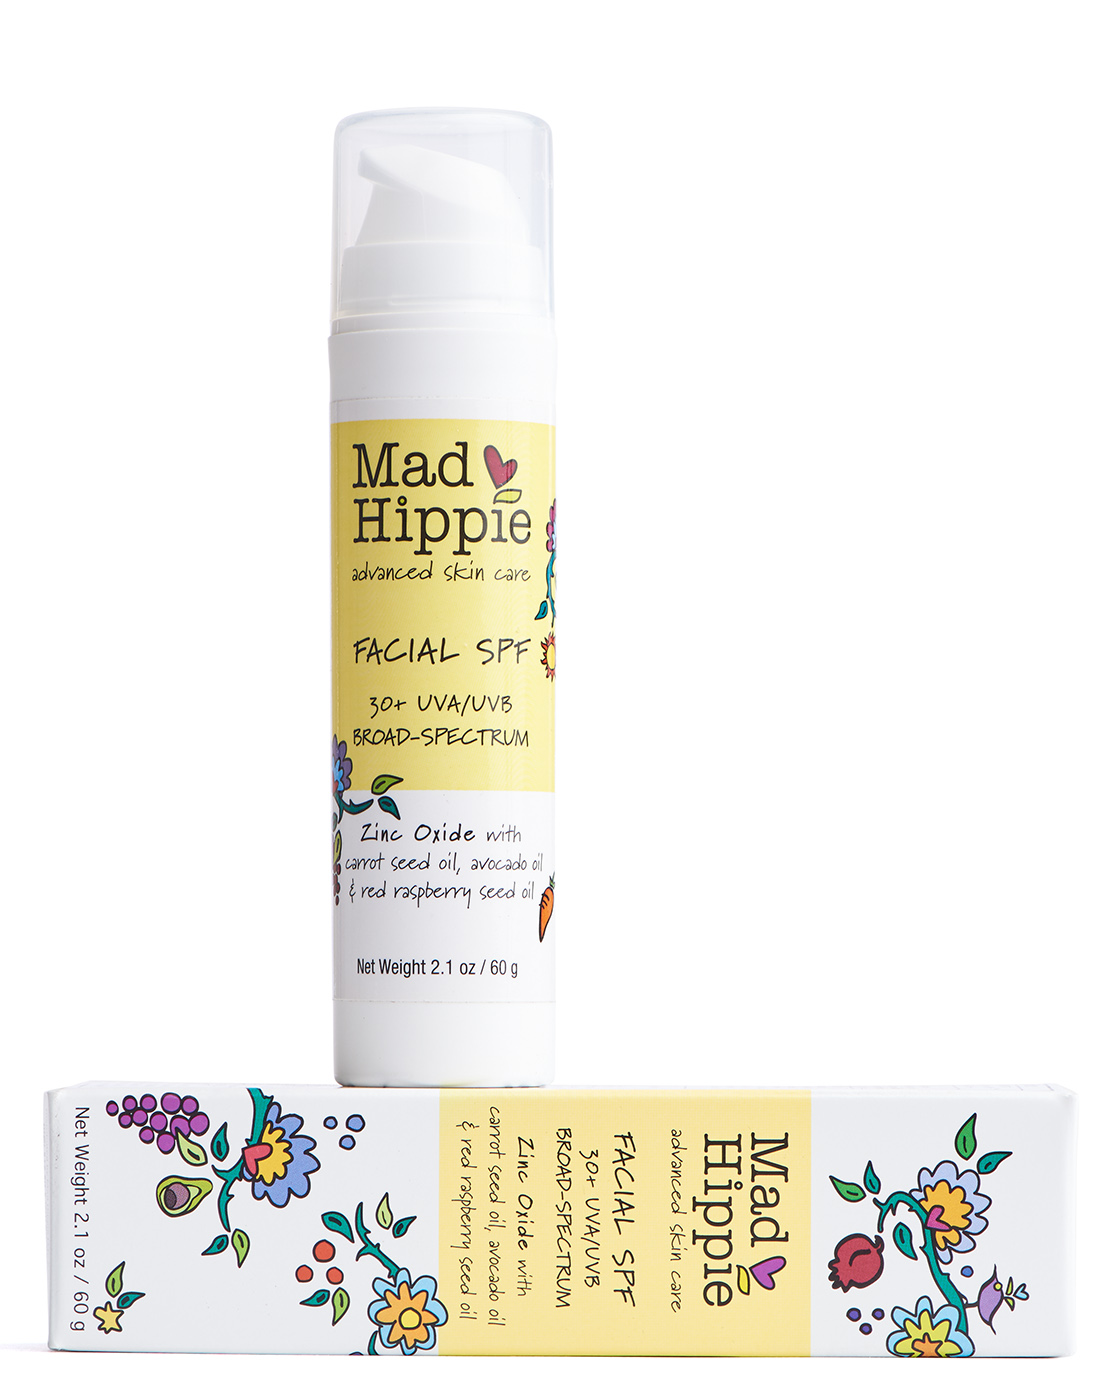 Mad Hippie - Main Product Images - Facial SPF.jpg